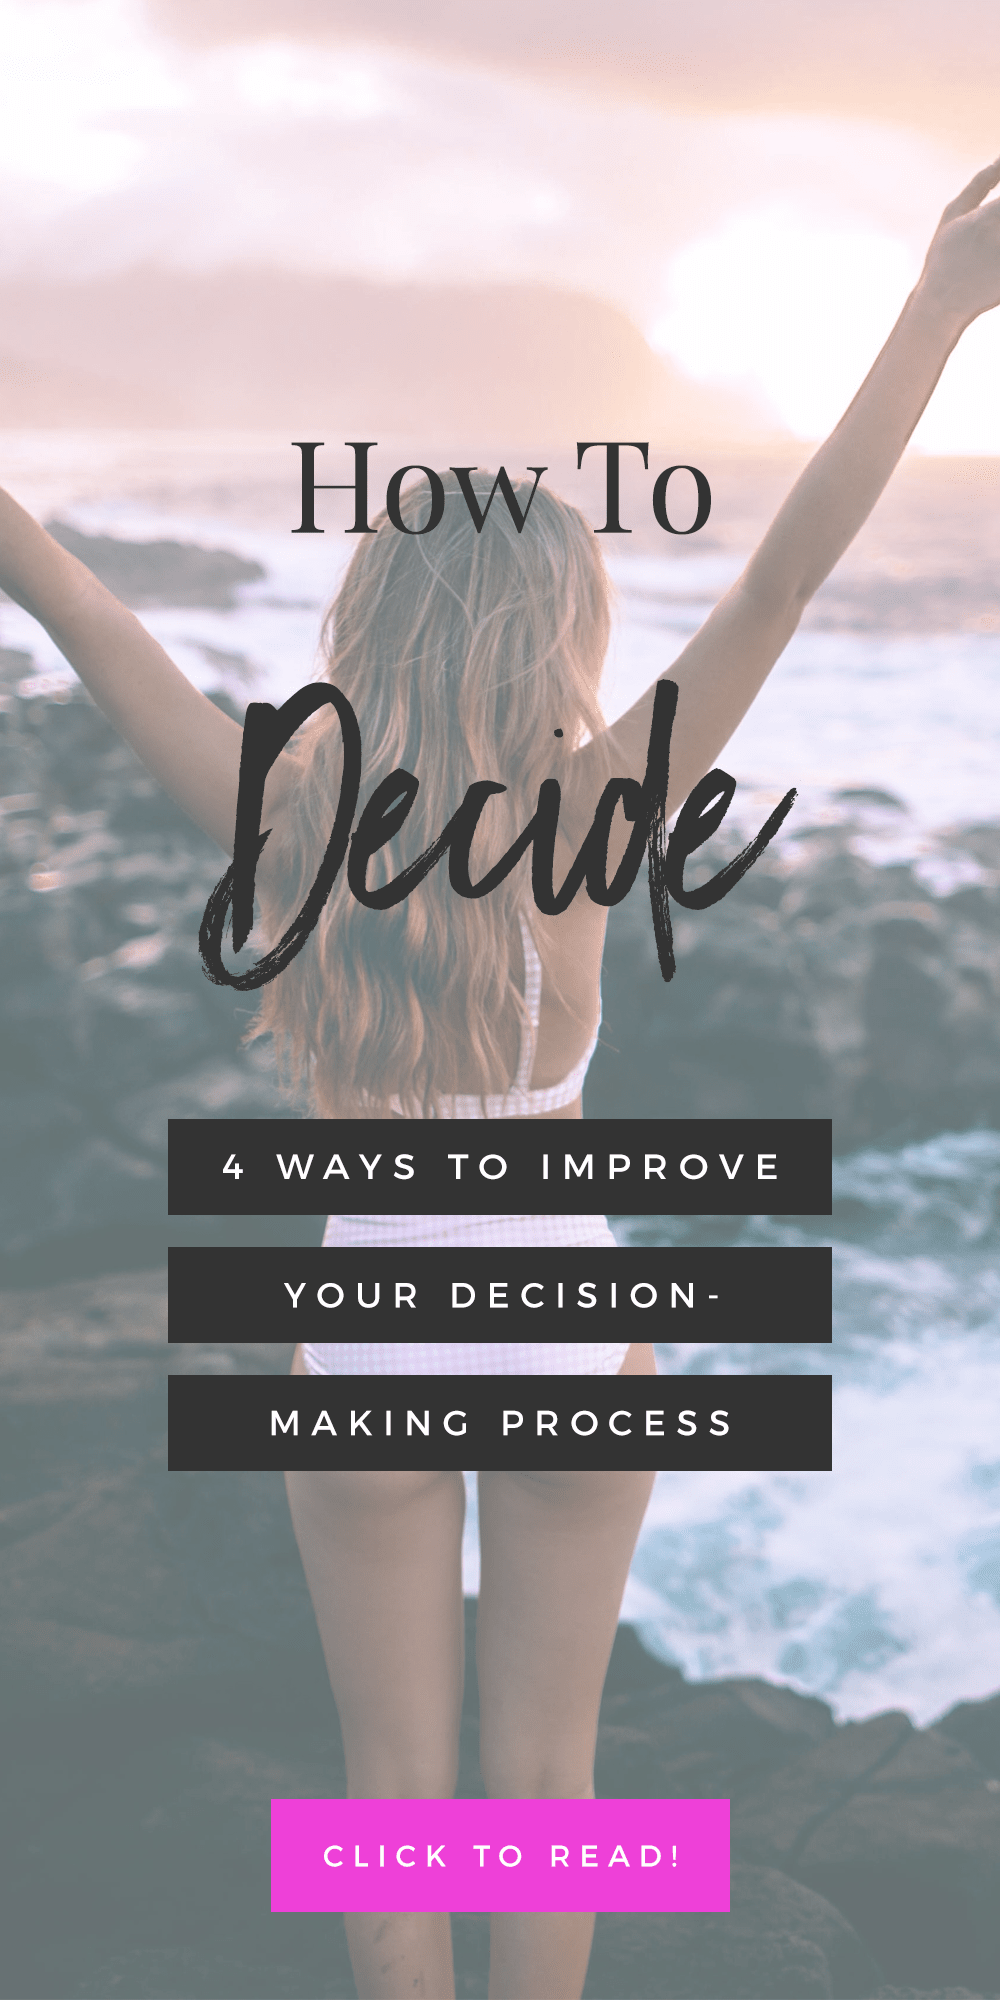 How To Decide: 4 Ways To Improve Your Decision-Making Process